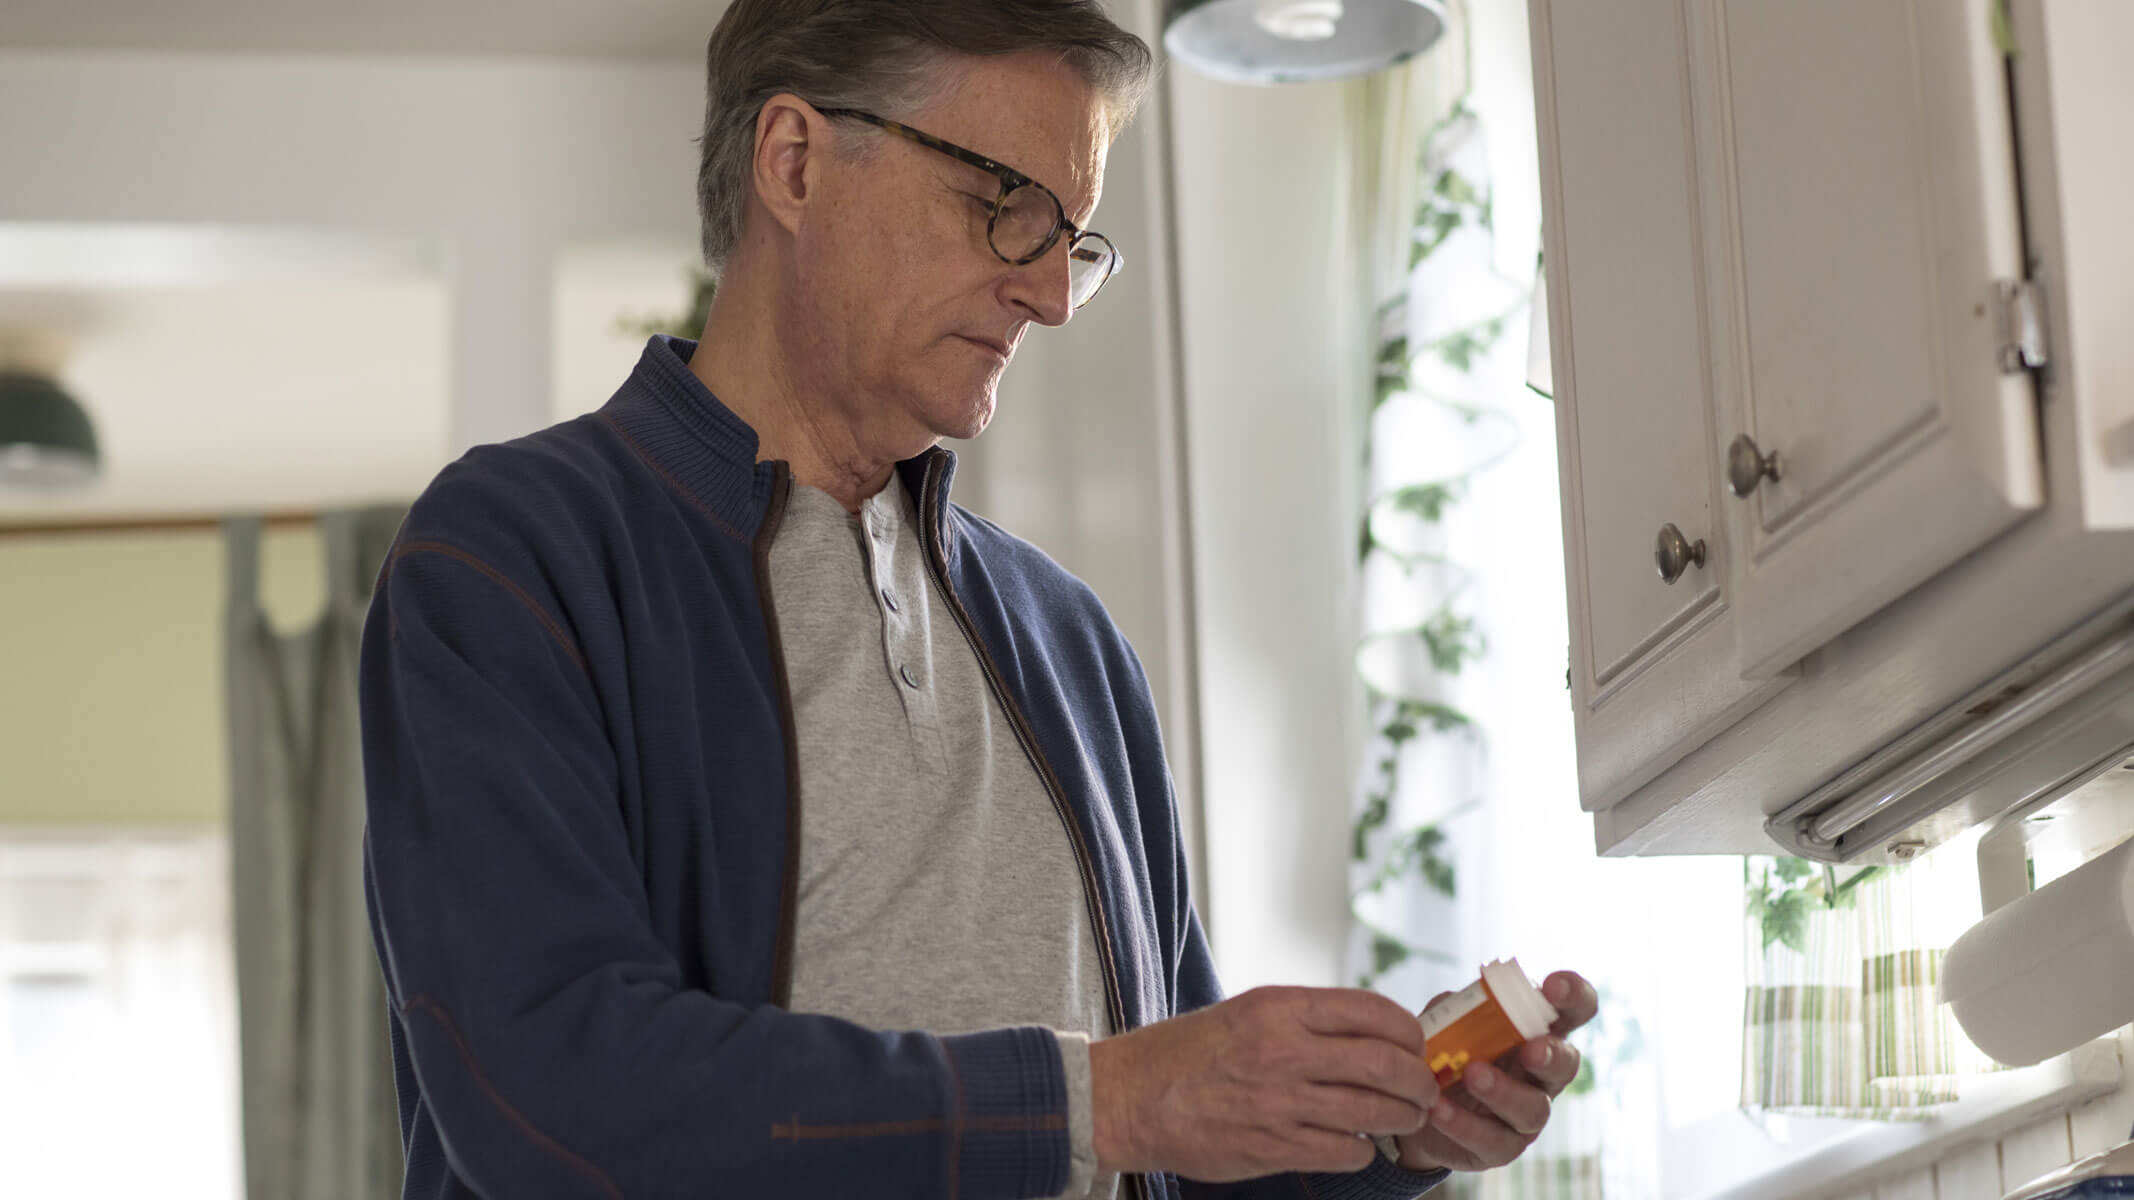 Man reads medication label in kitchen.